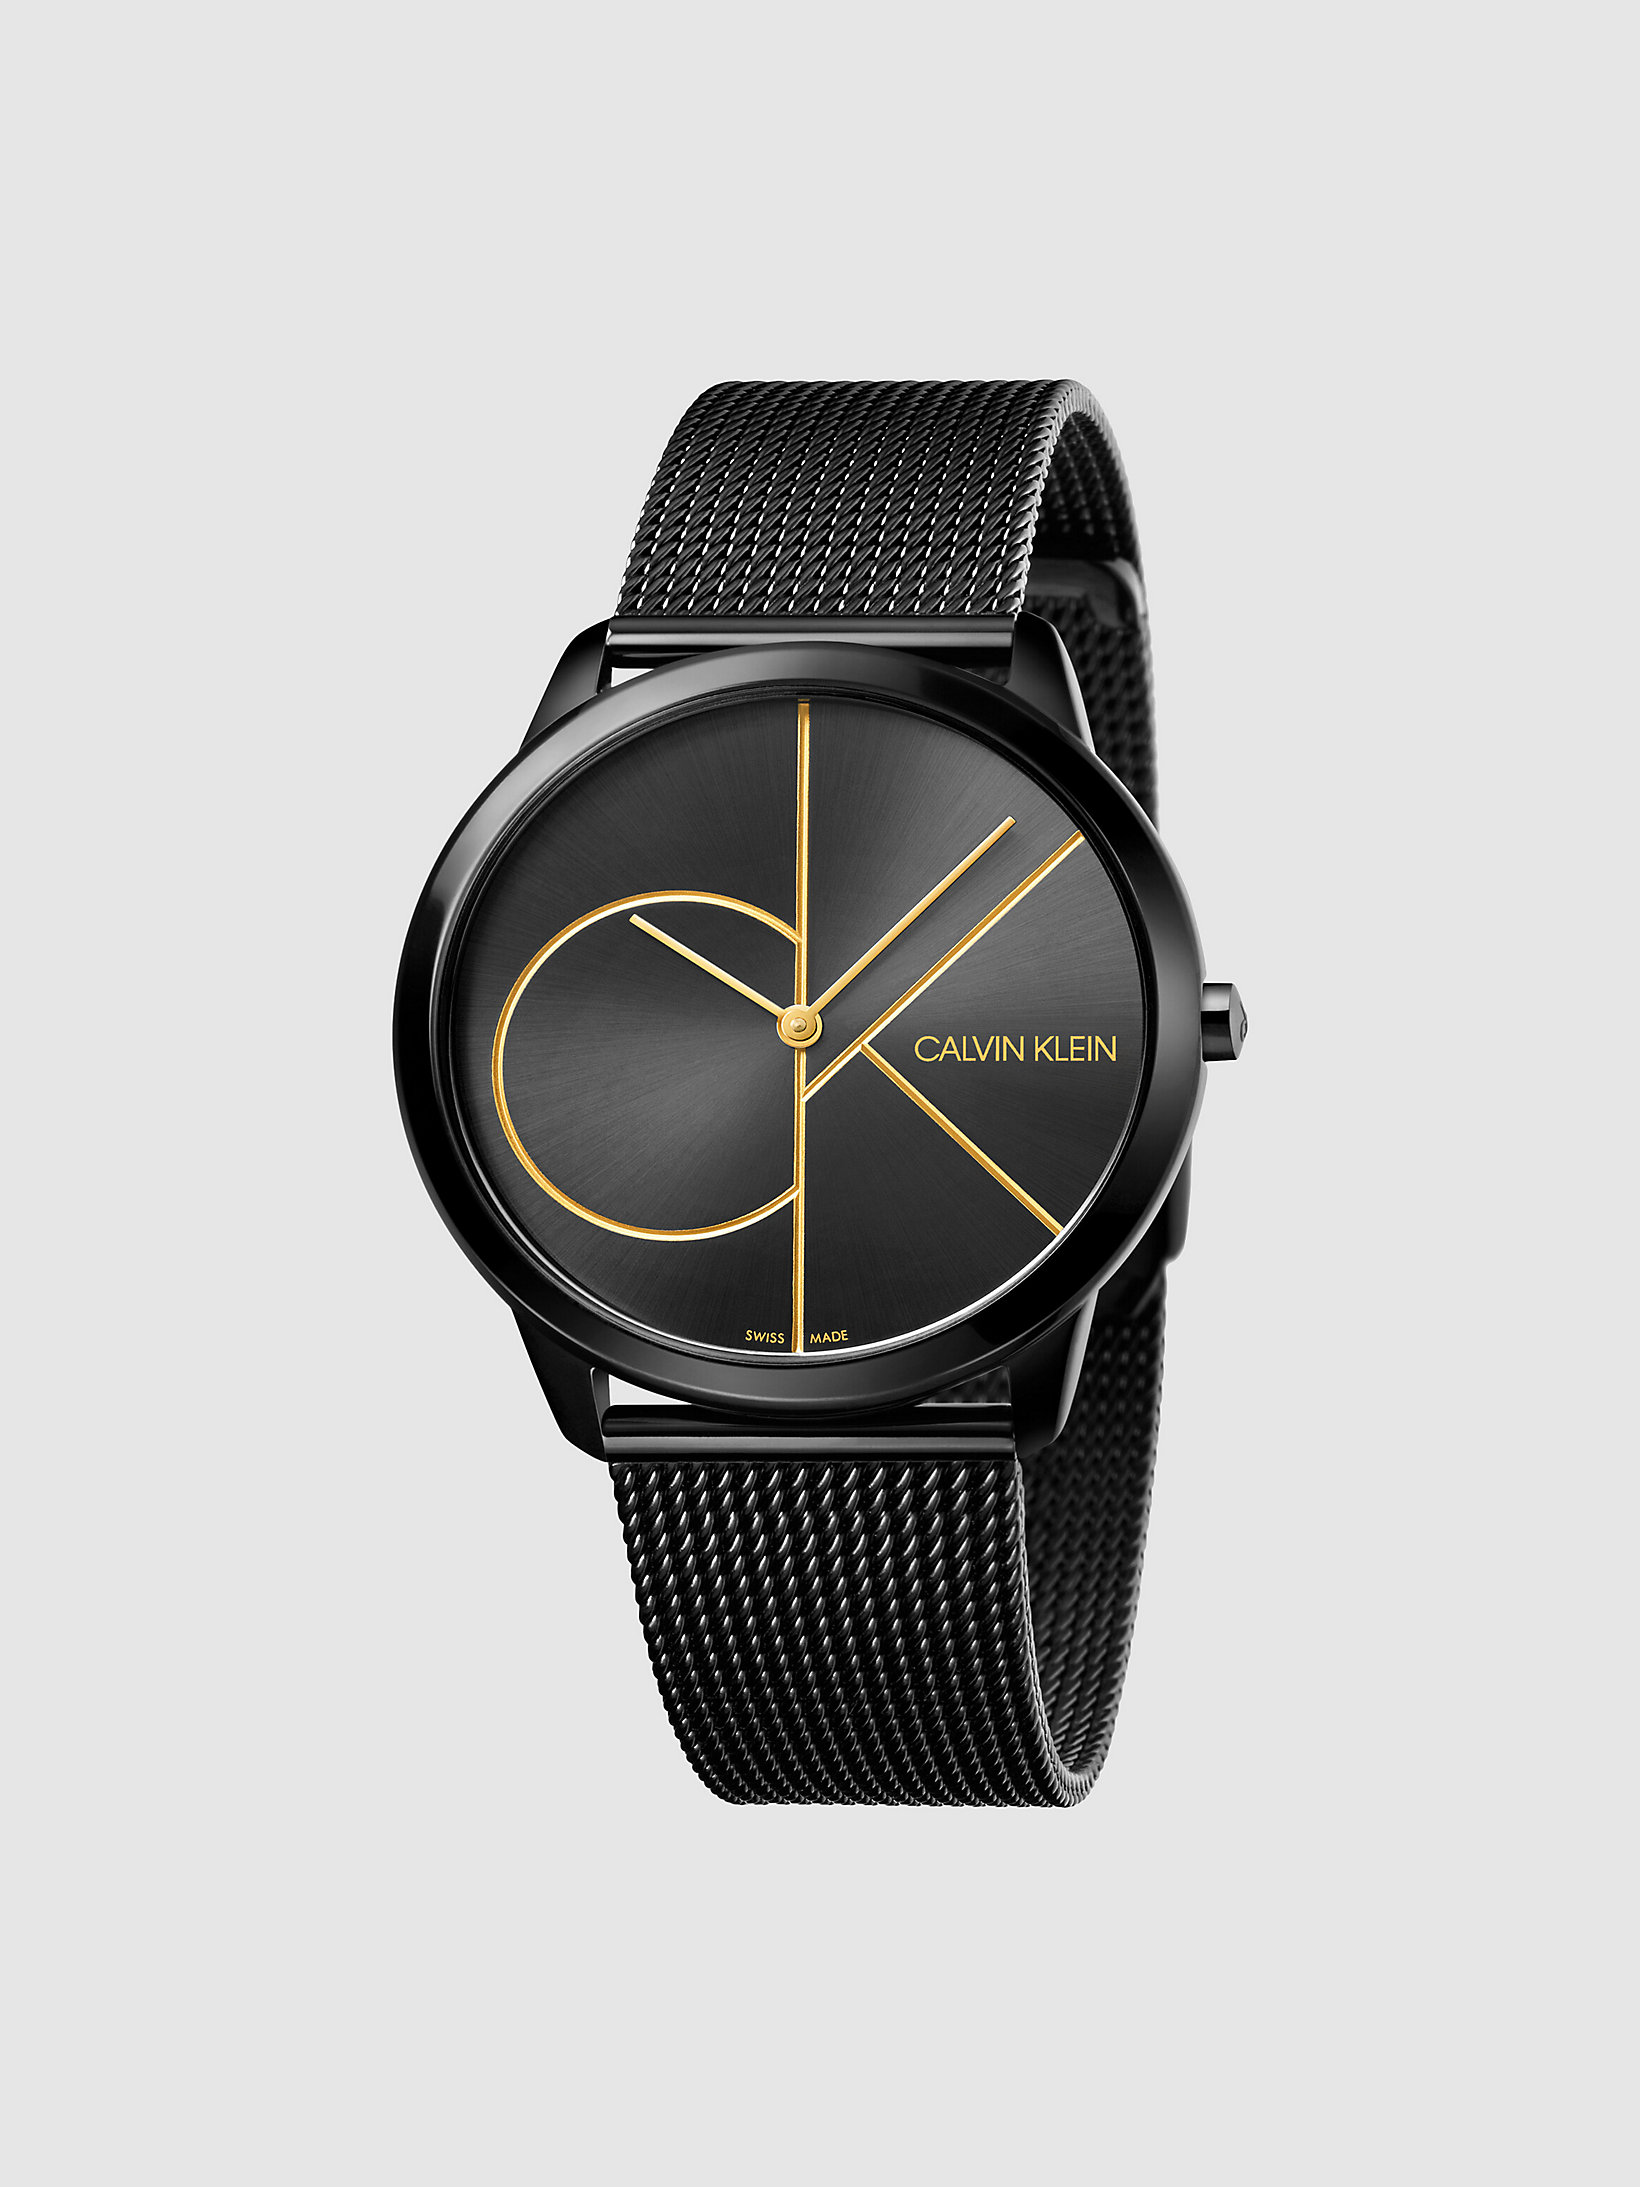 watches for men calvin klein® official site calvinklein watch calvin klein minimal black black calvin klein watches main